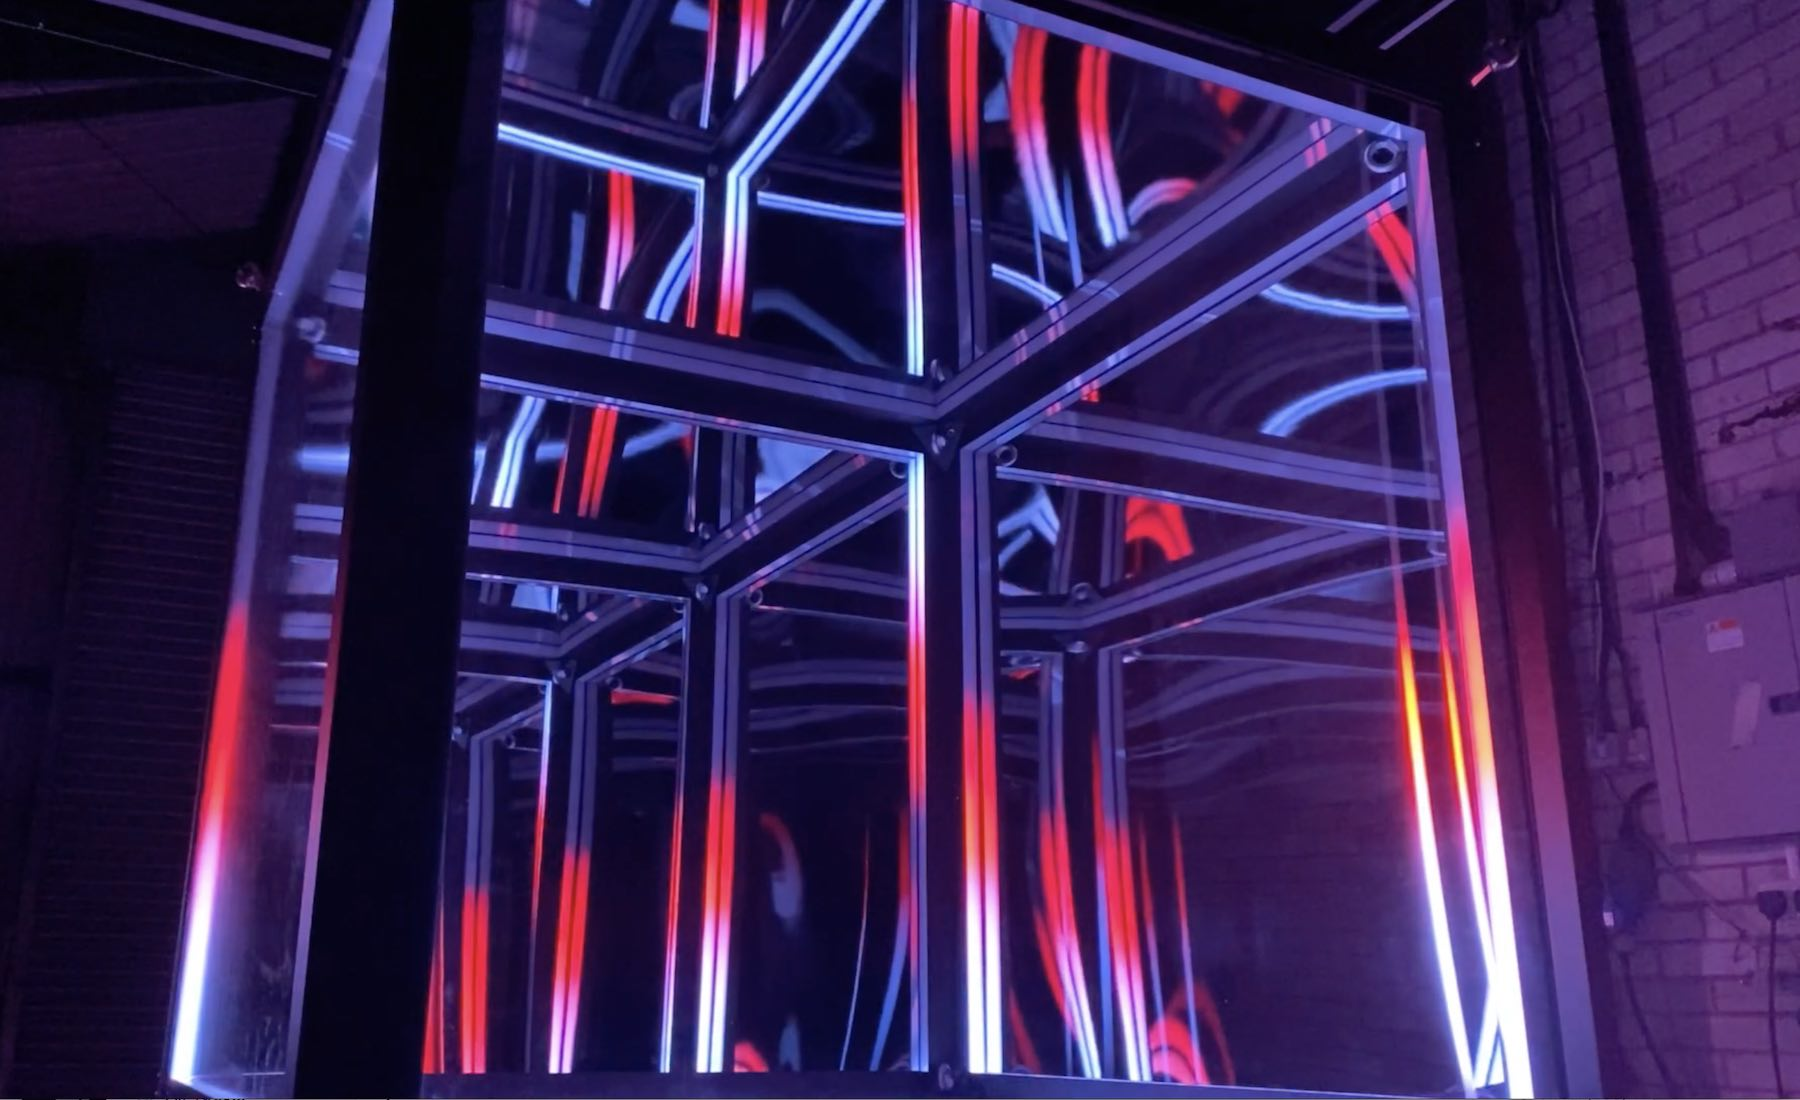 LUCID-LIGHT-INSTALLATION-CUBE-CLOSUP